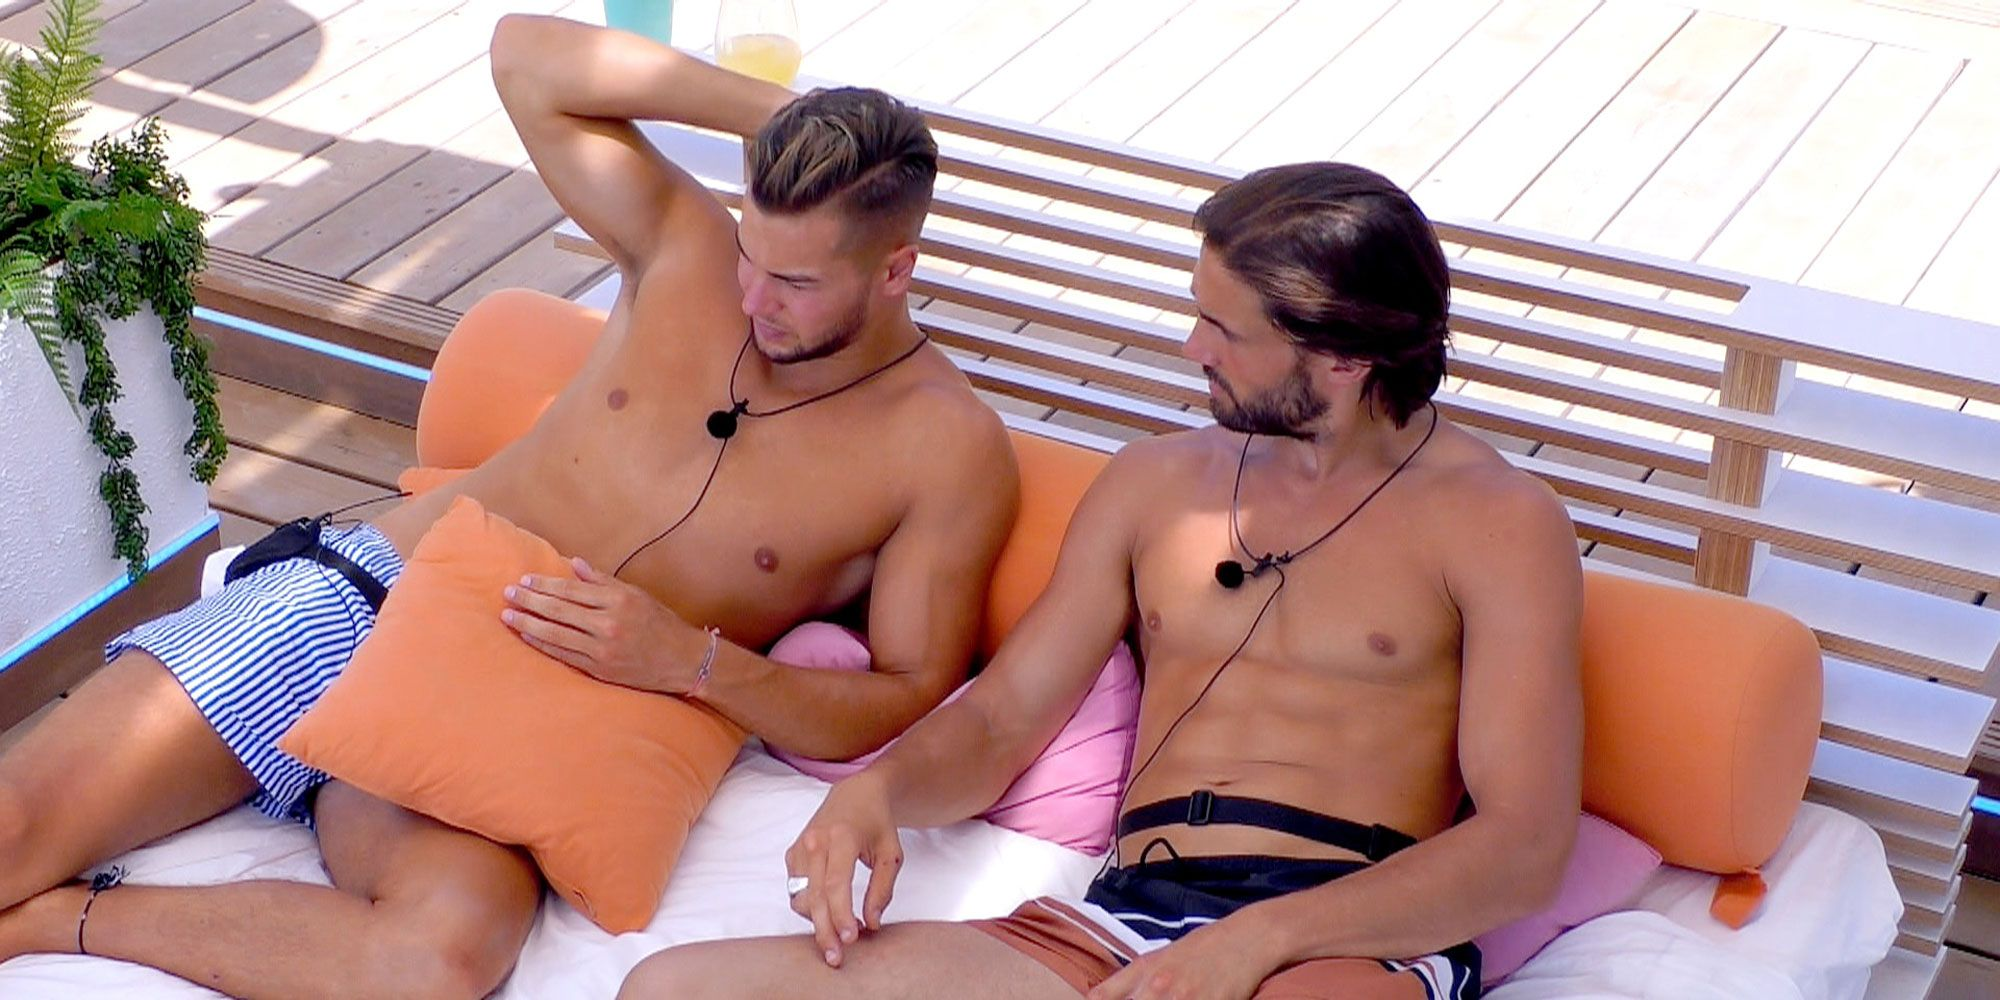 LOVE ISLAND 12/07/2017 - Chris and Jamie